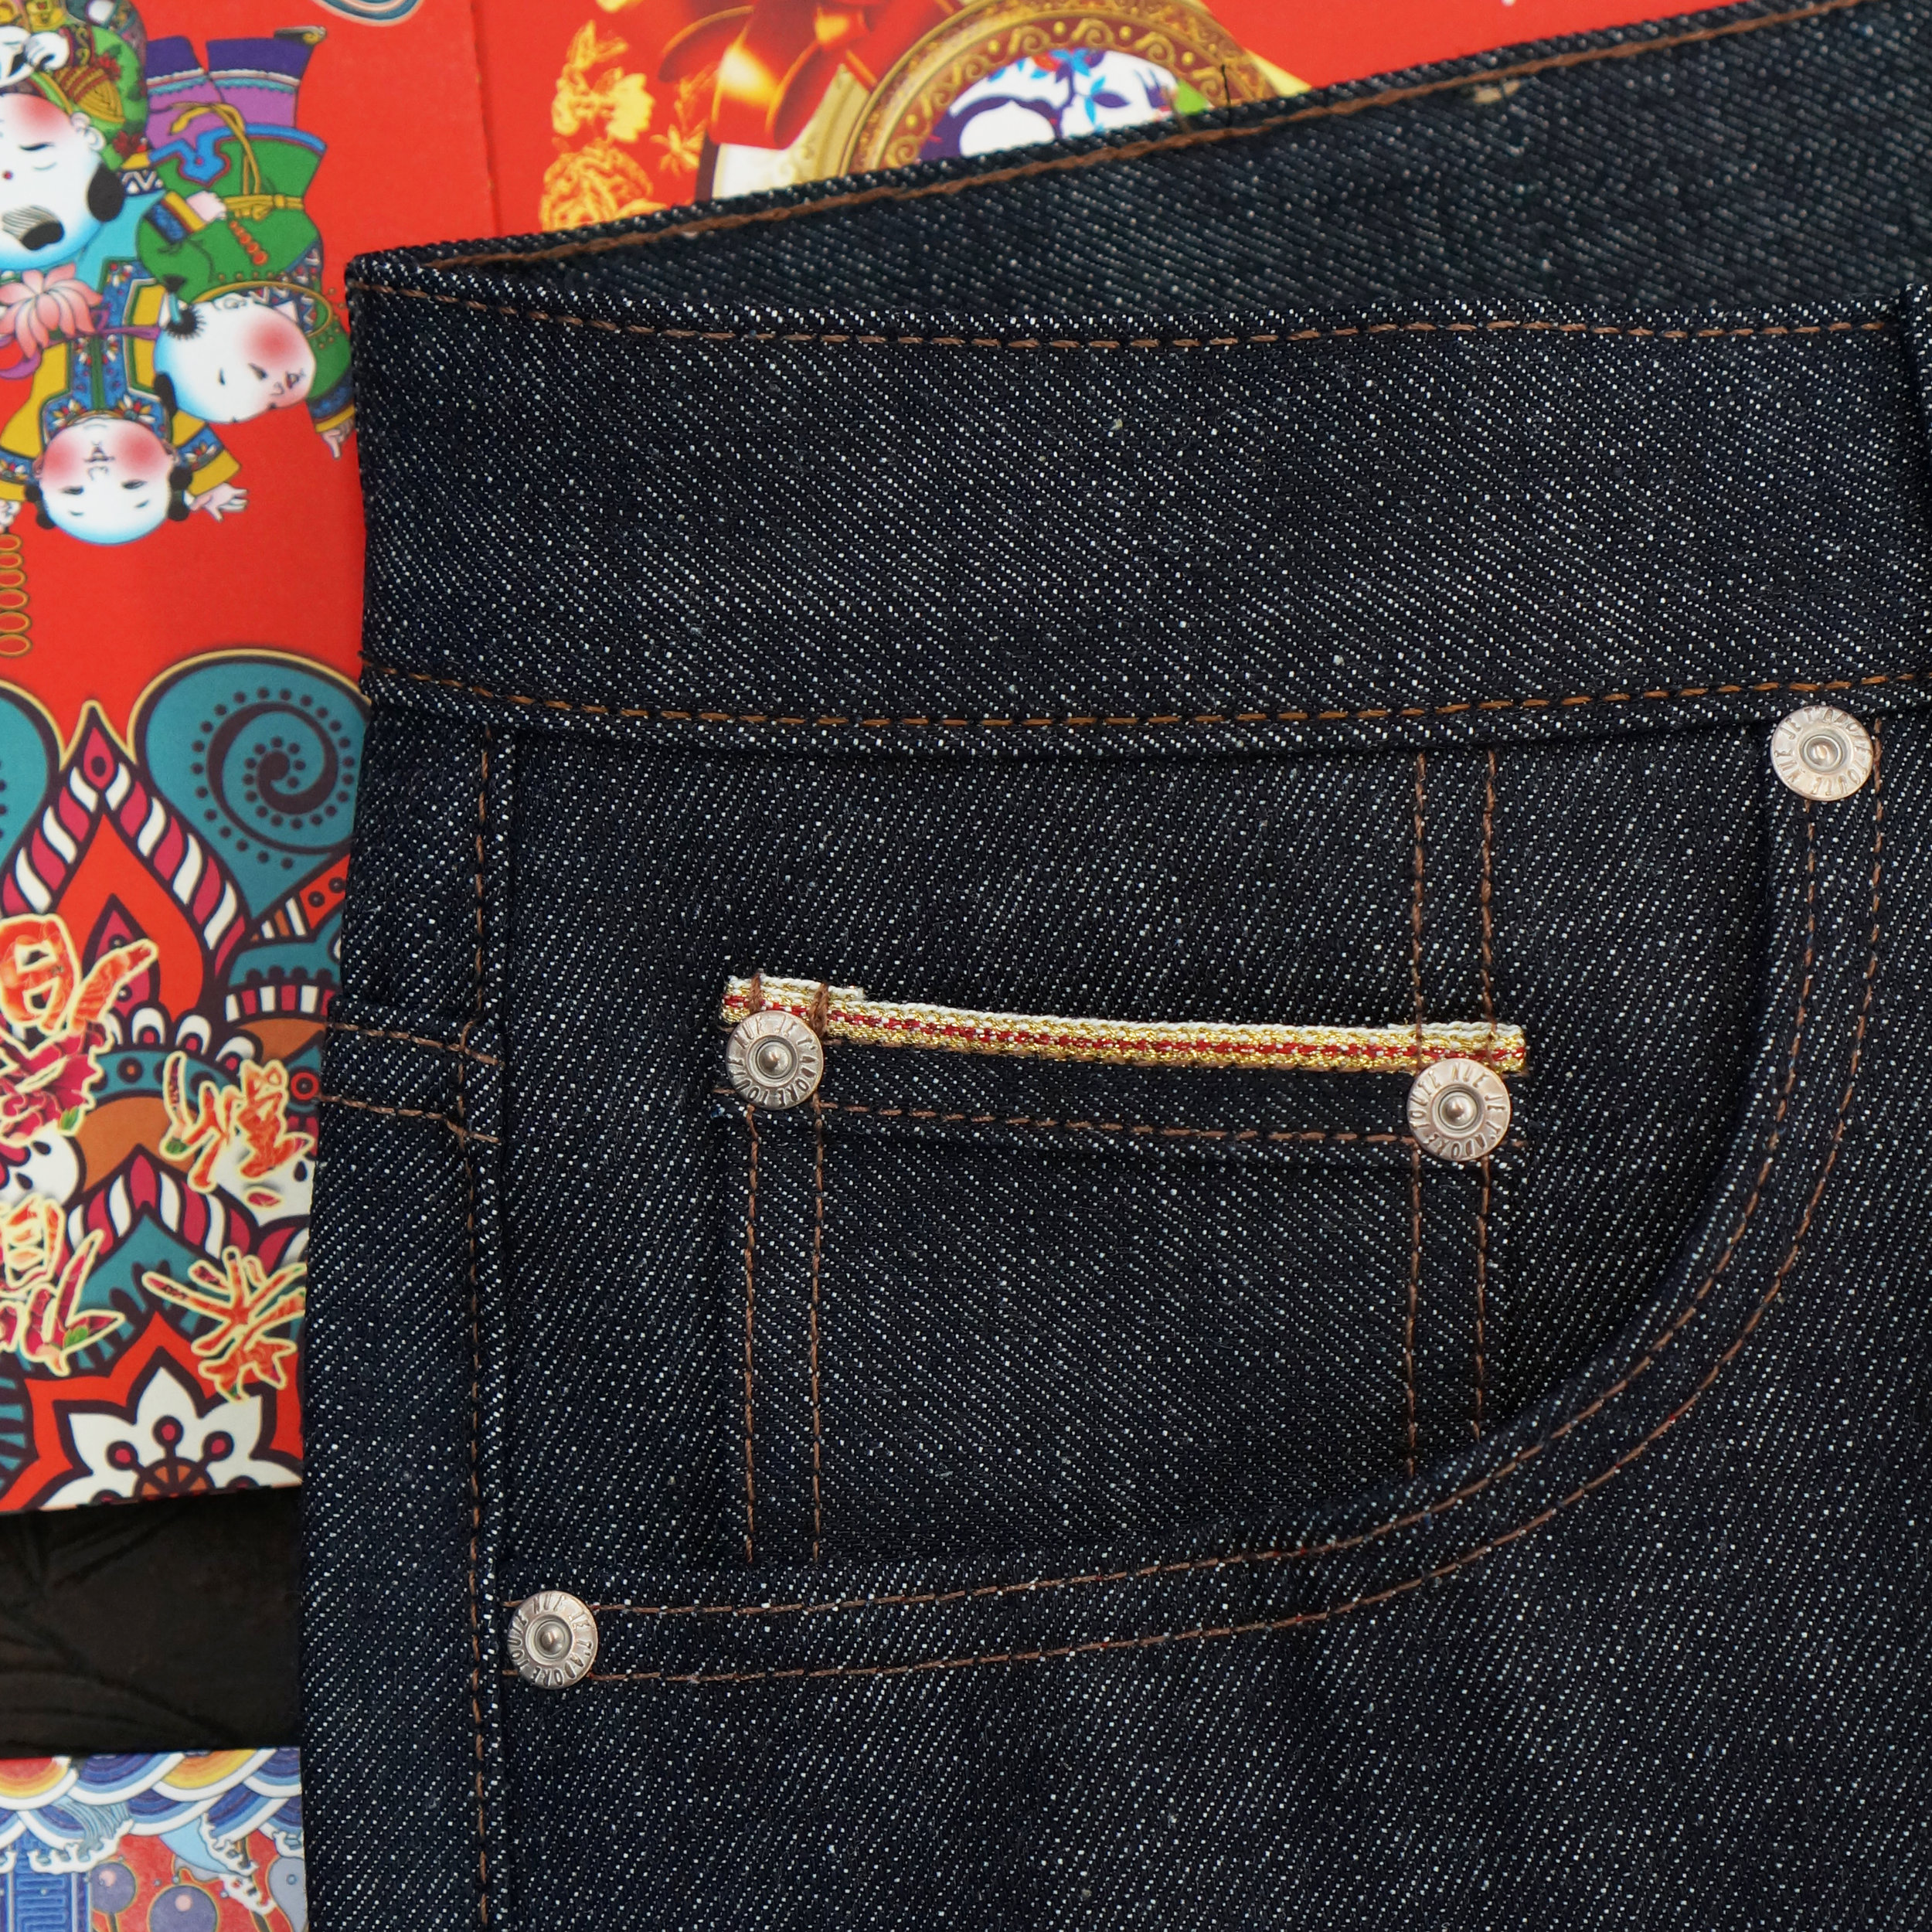 Red and Gold selvedge ID showing on the coin pocket